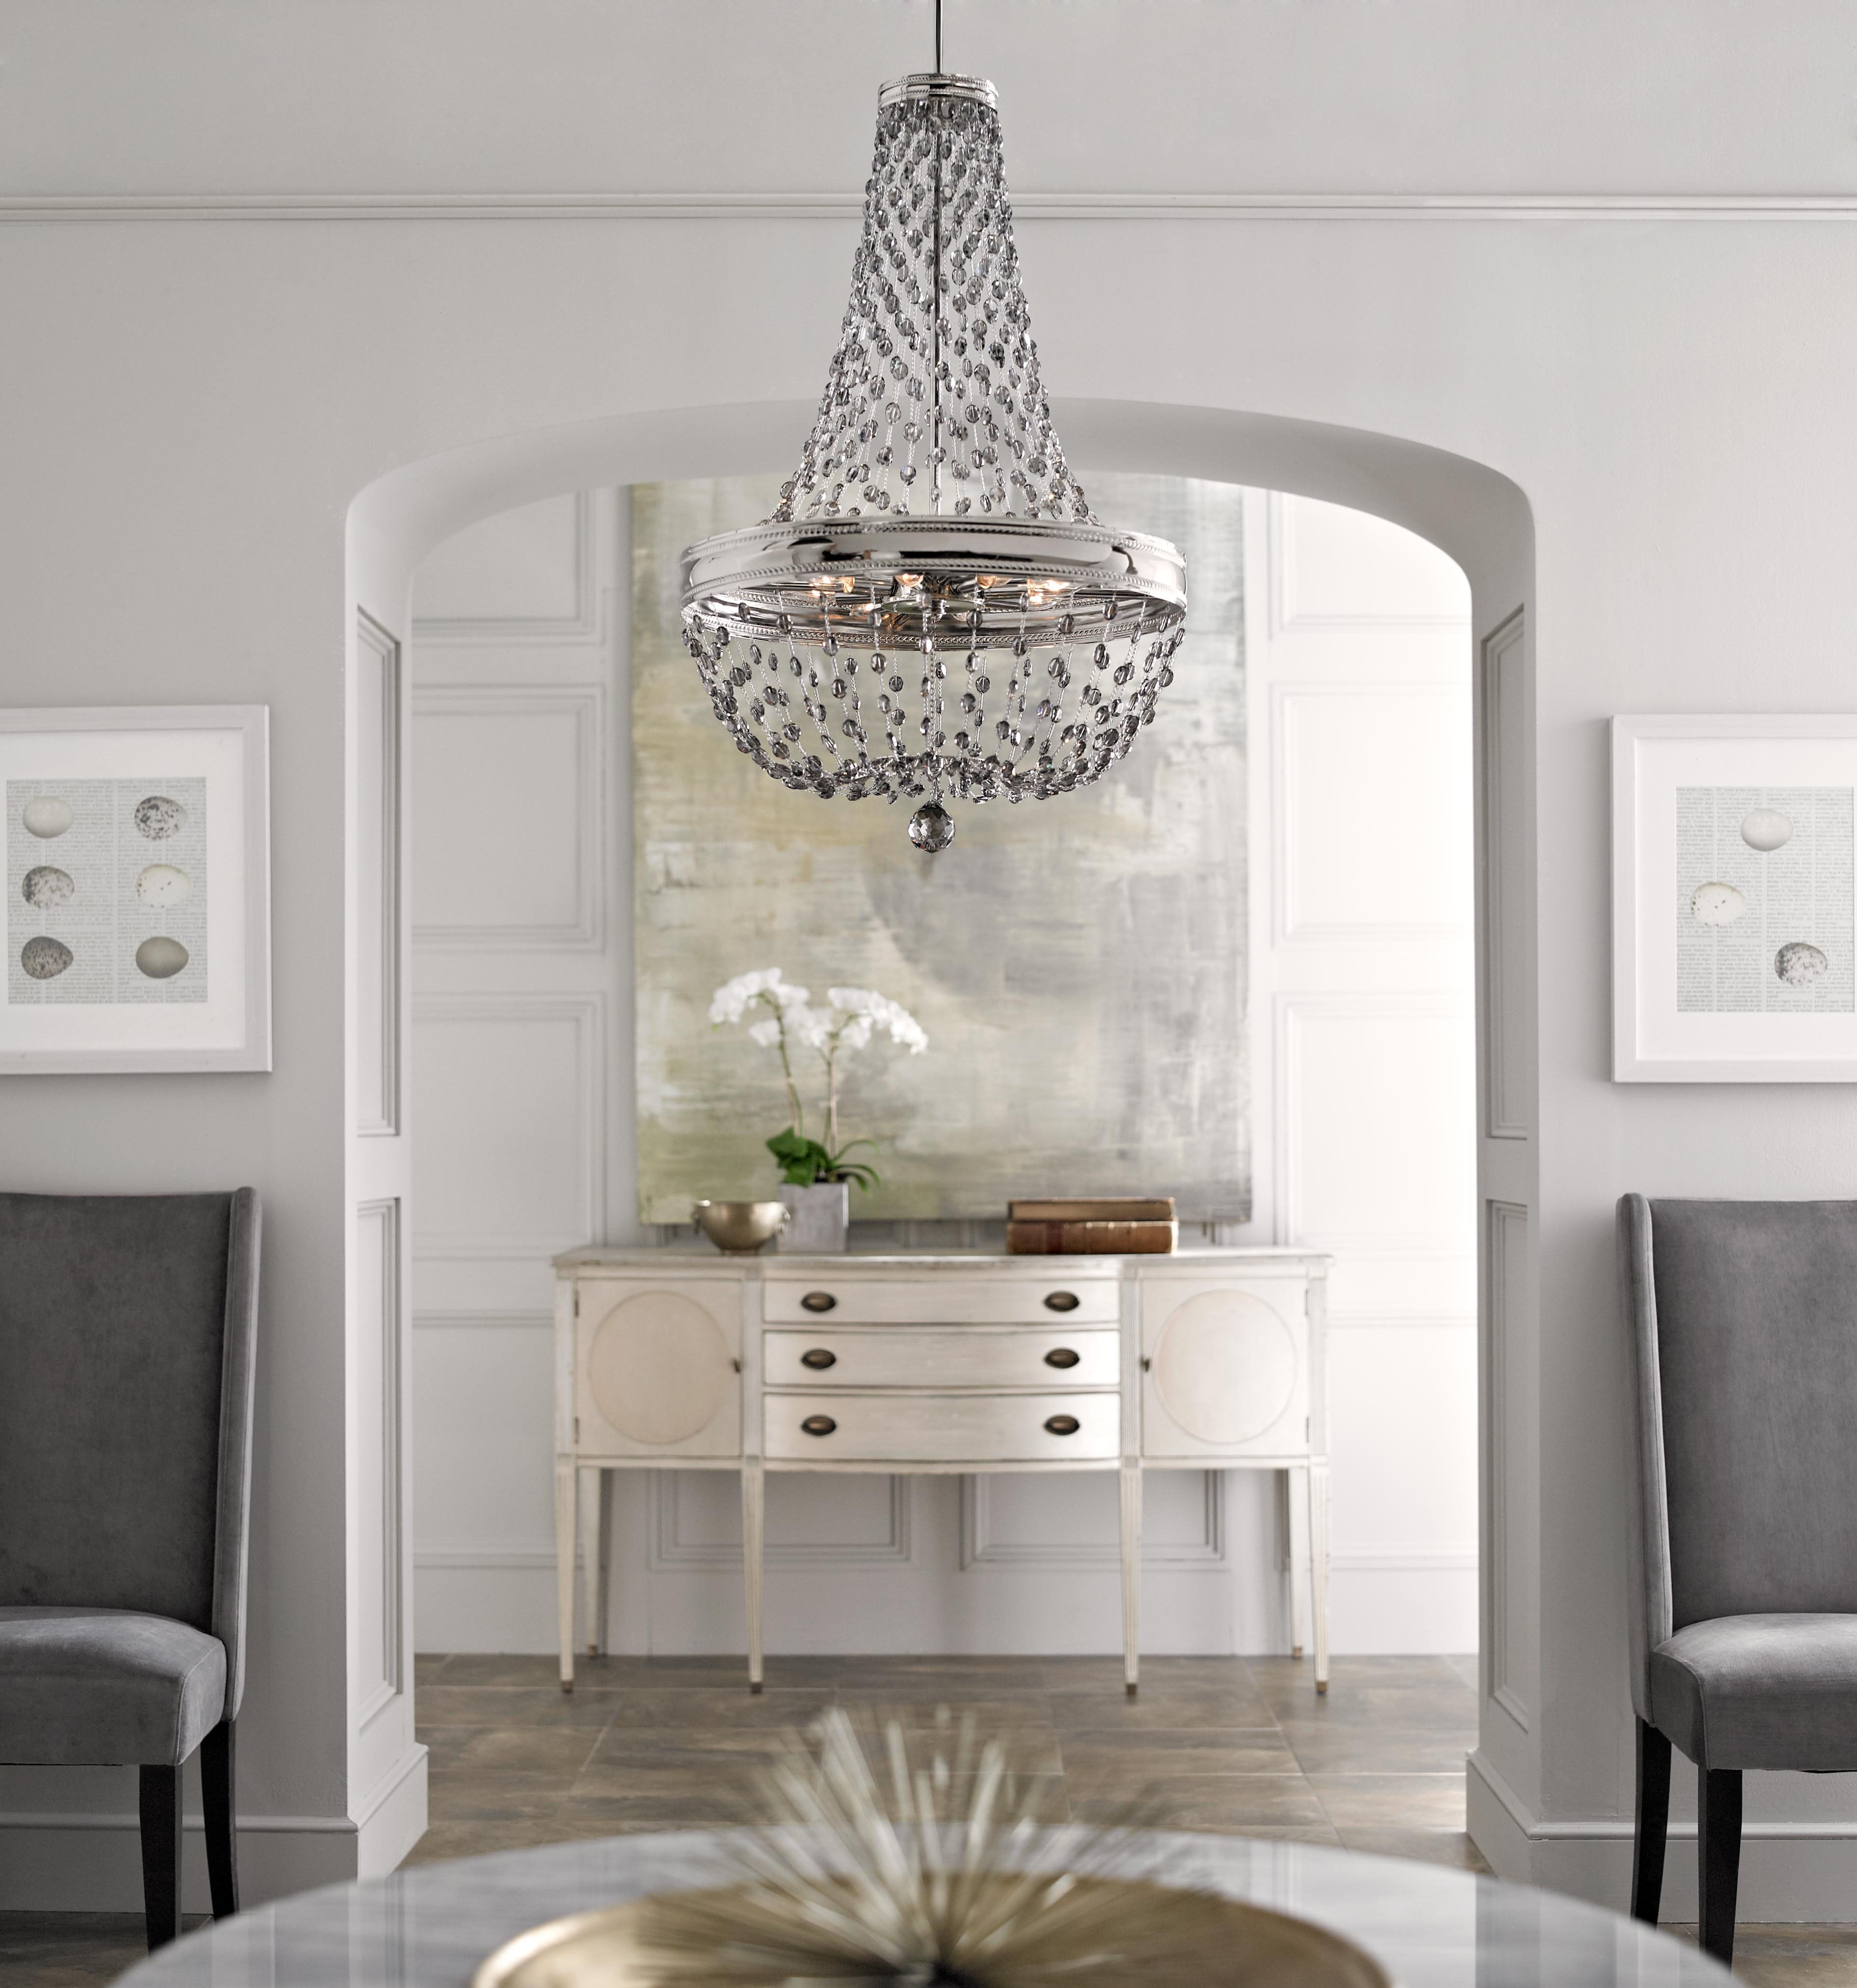 4 best types of chandeliers for a home chandelier chic pinterest 4 best types of chandeliers for a home aloadofball Choice Image